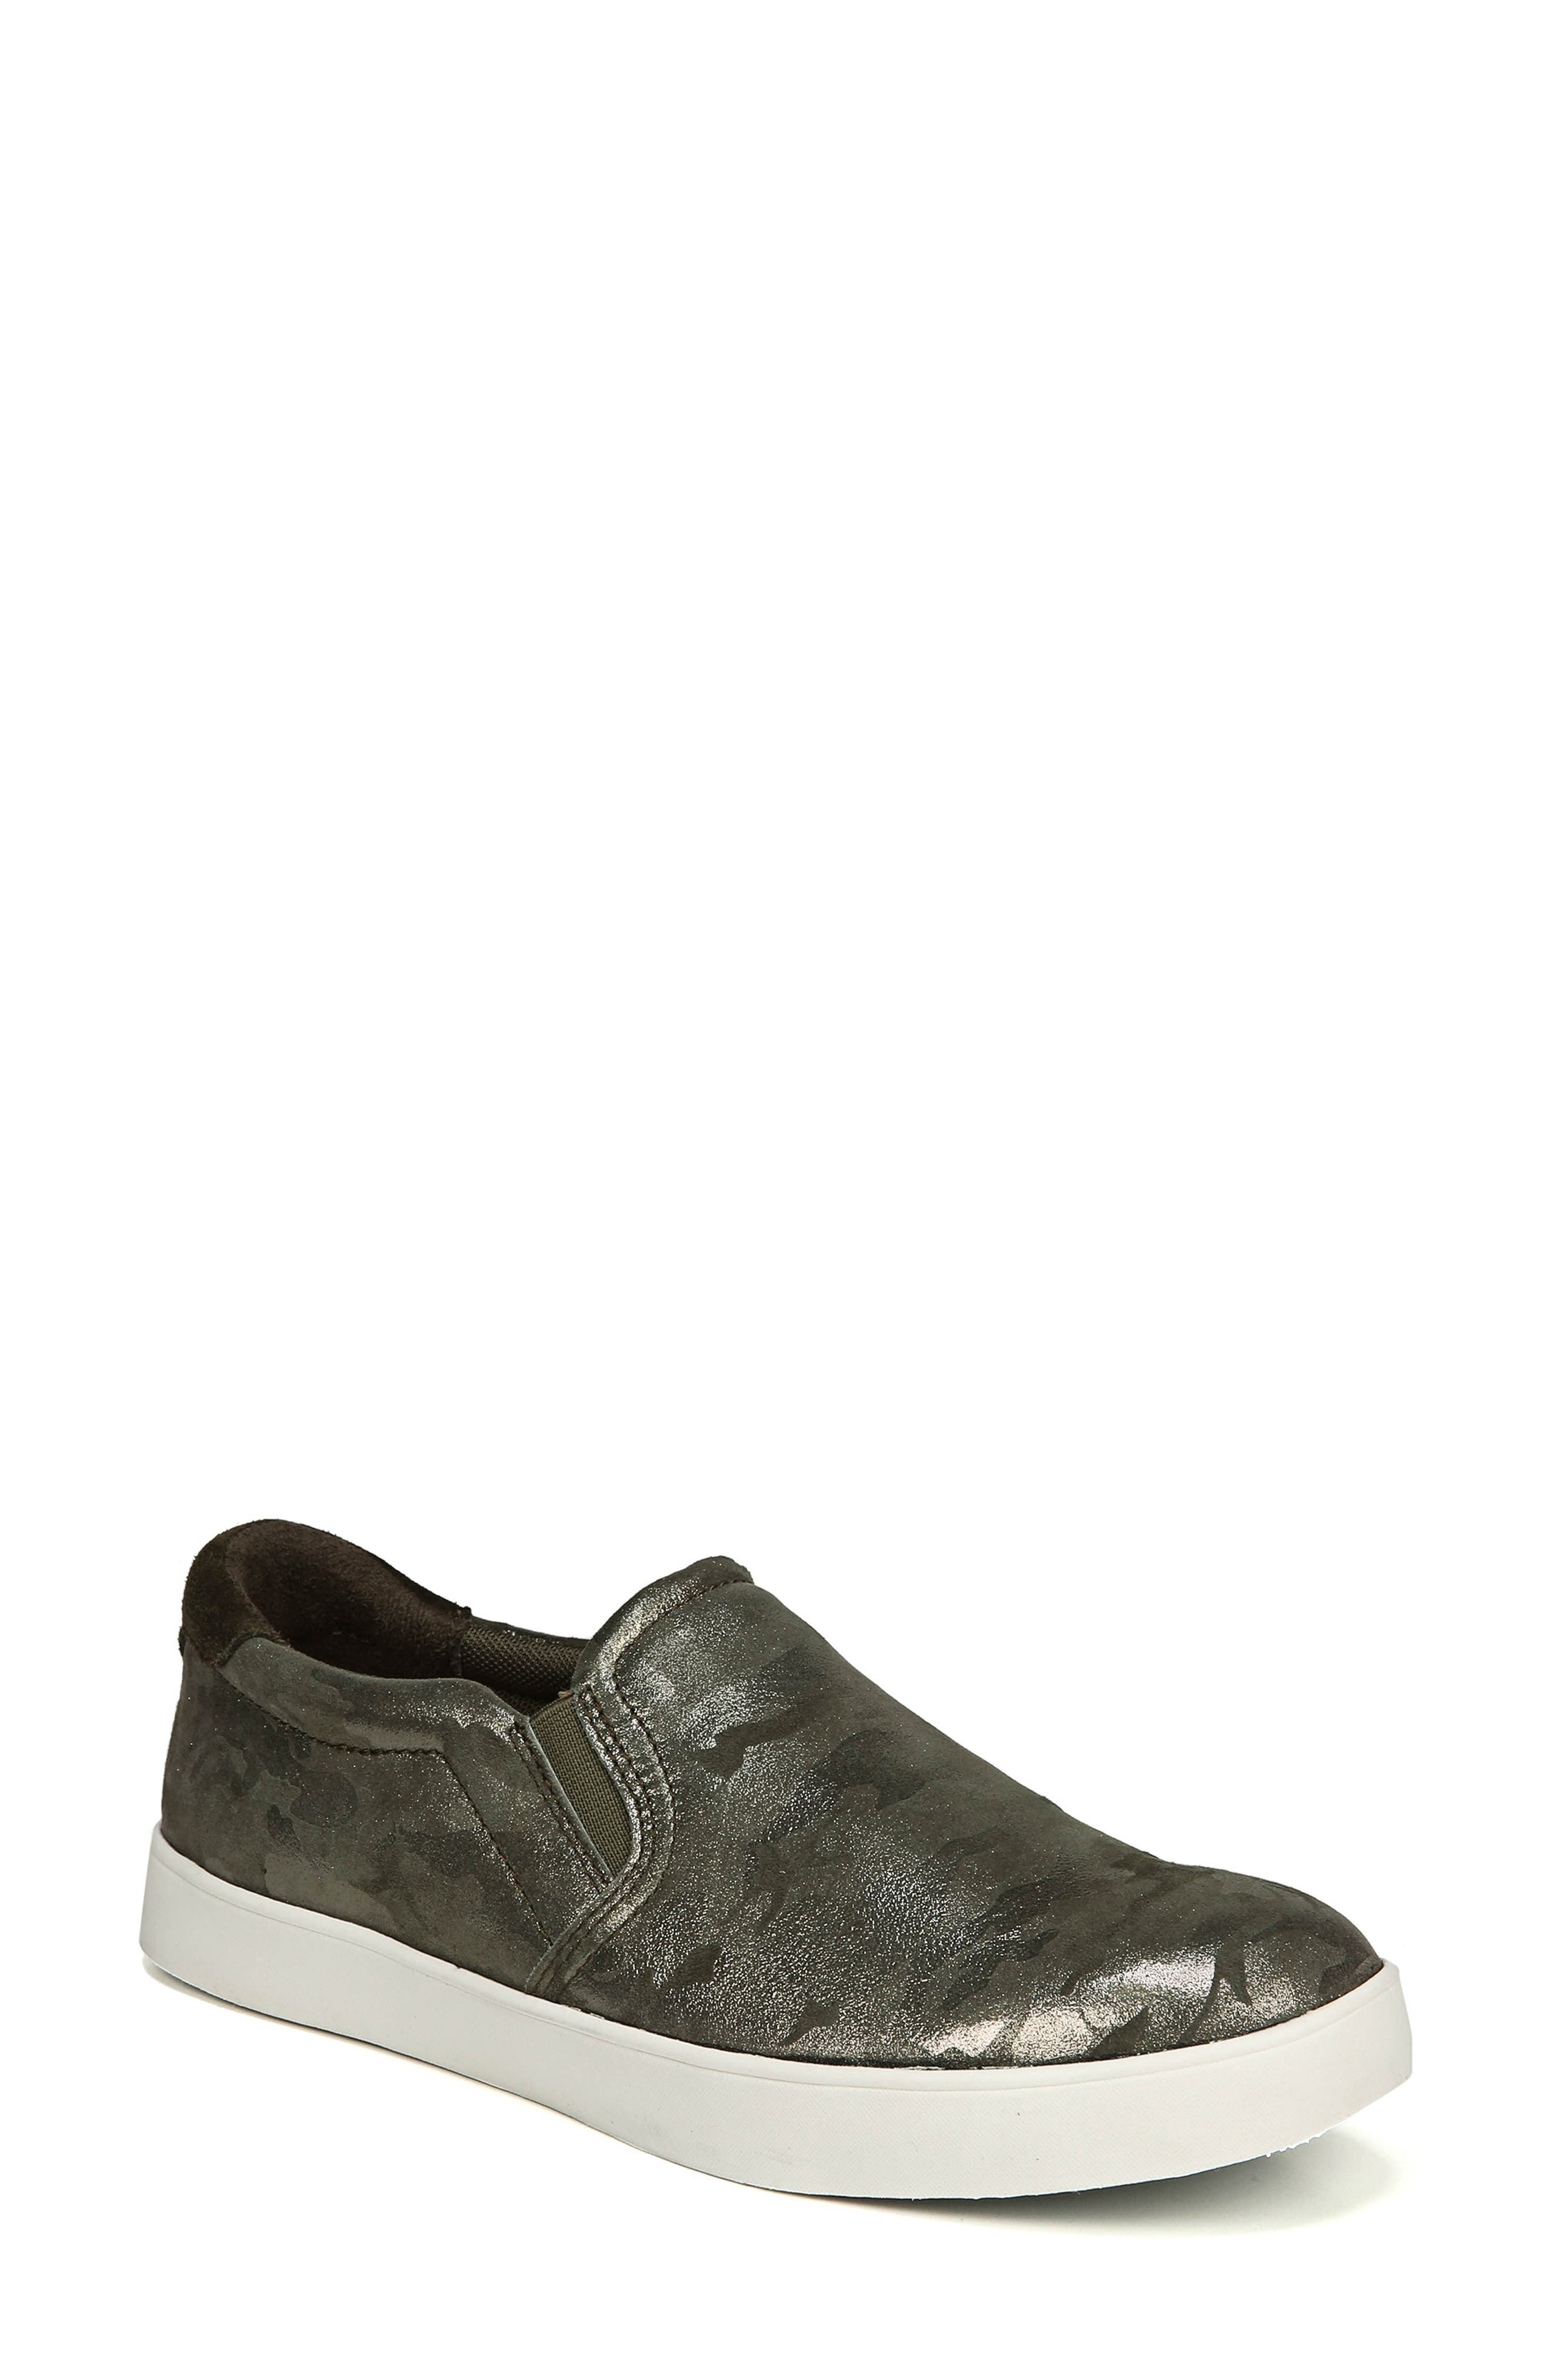 Original Collection 'Scout' Slip On Sneaker,                         Main,                         color, GREEN LEATHER